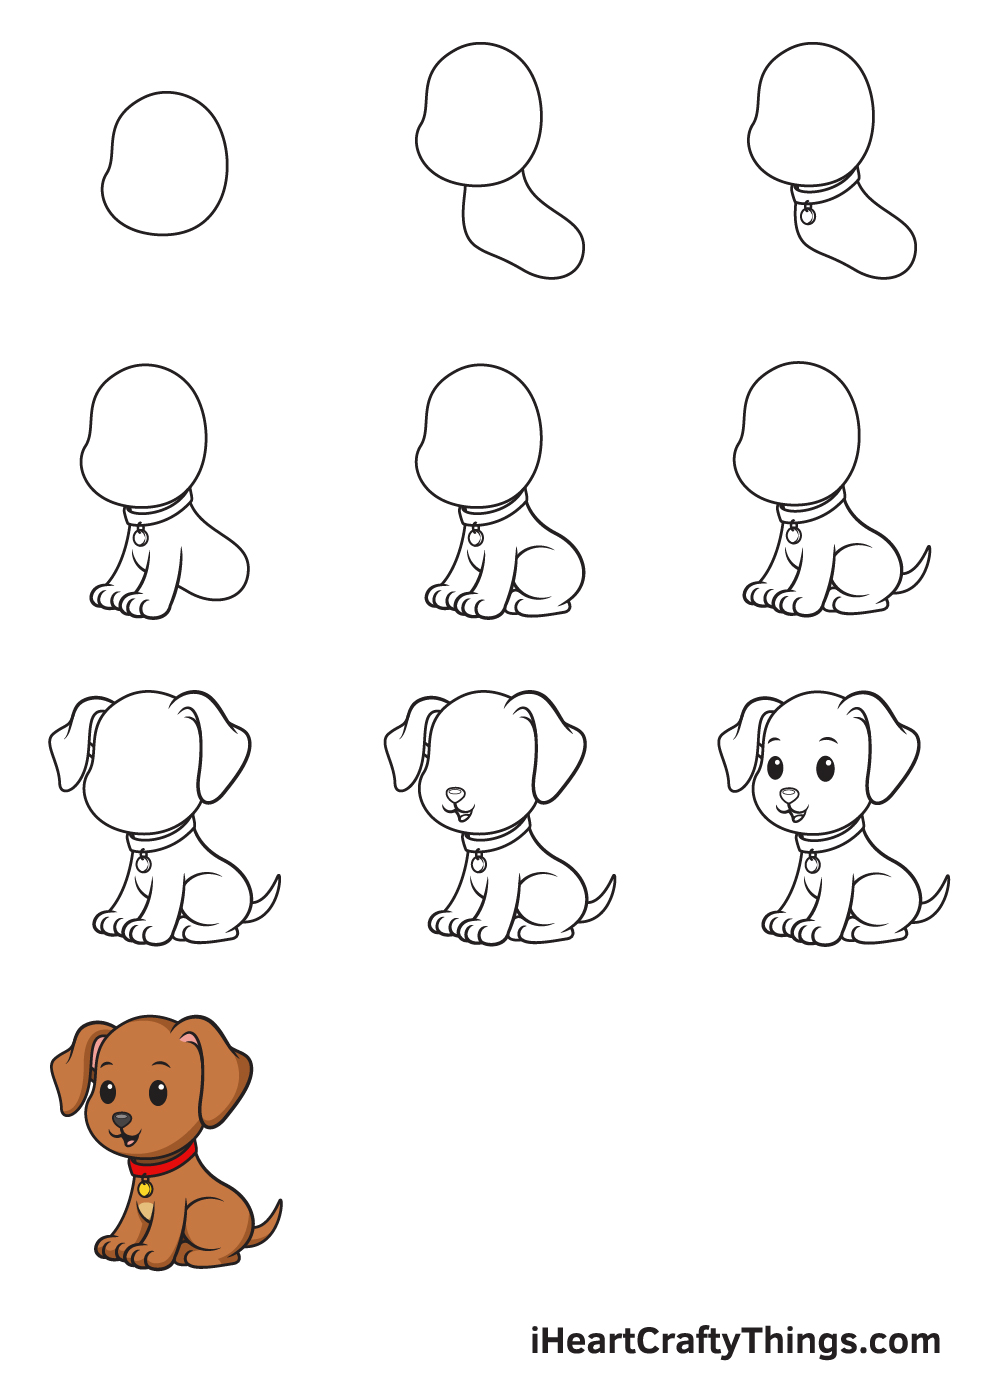 drawing dog in 9 easy steps